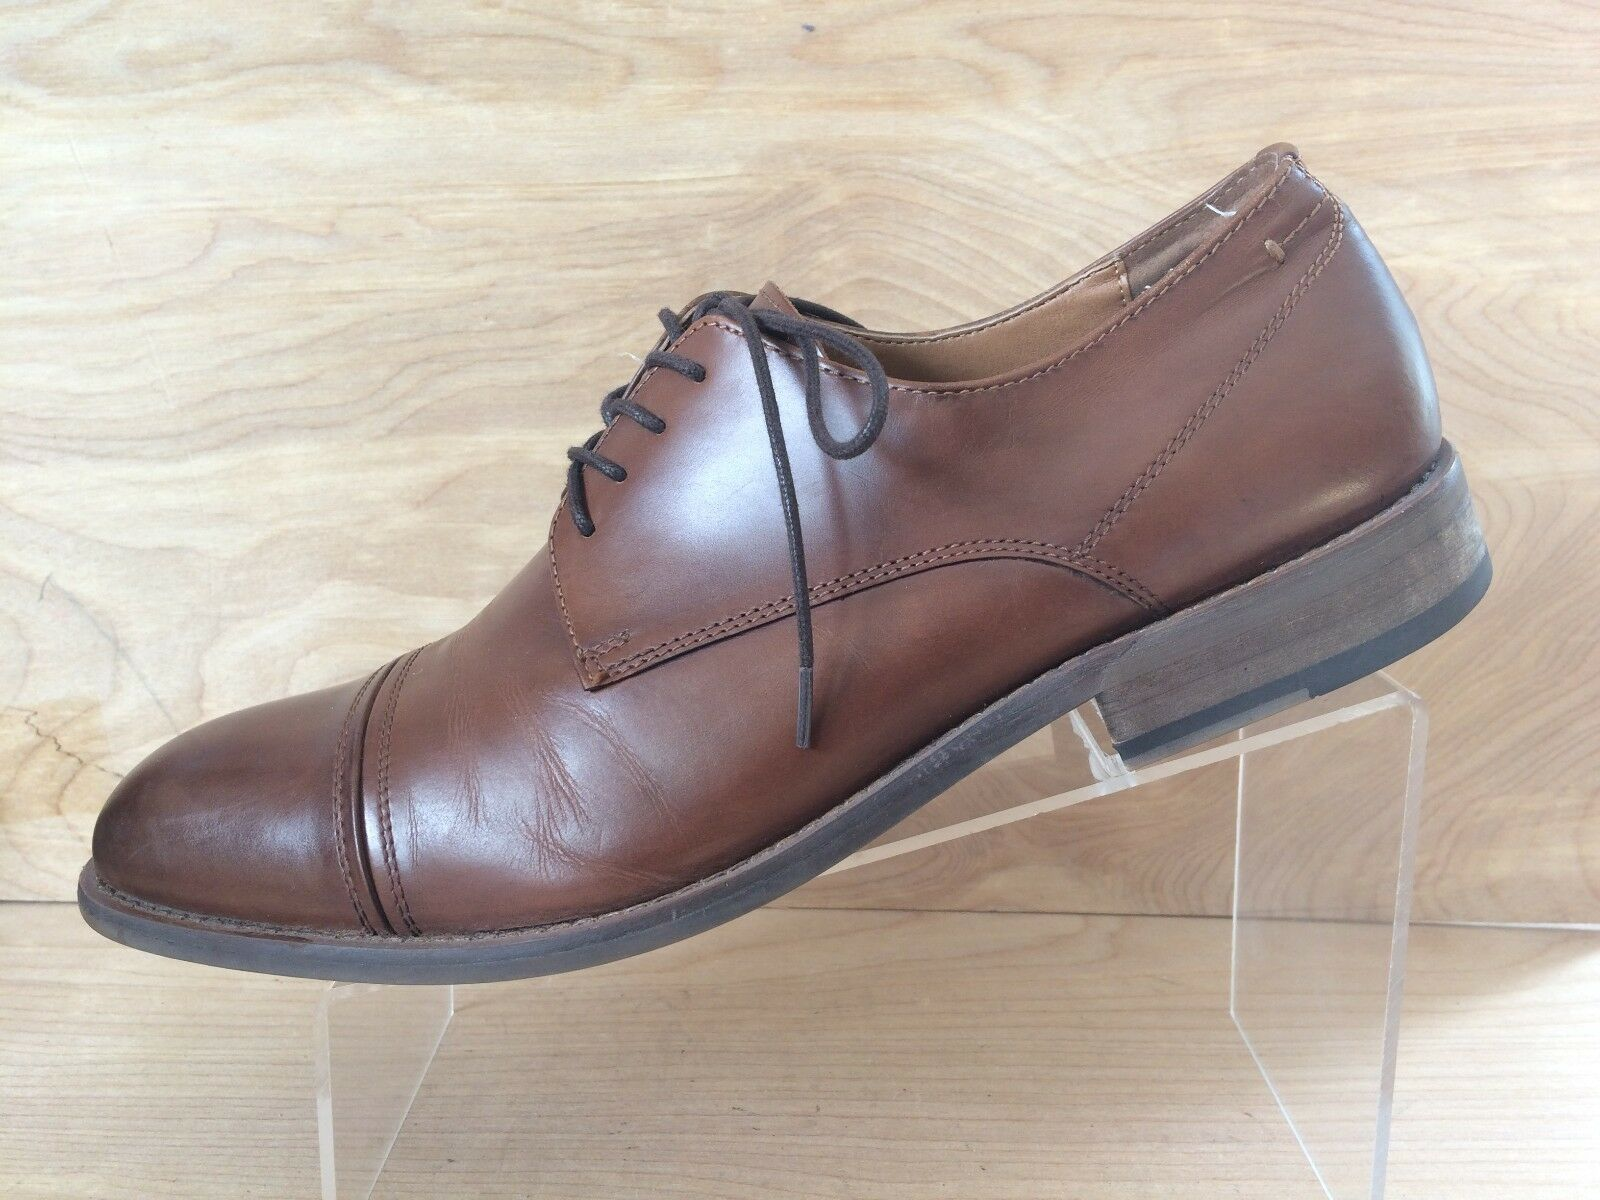 Kenneth Cole Match Maker Mens Brown Leather Lace Up Cap Toe Oxford Size 11.5M